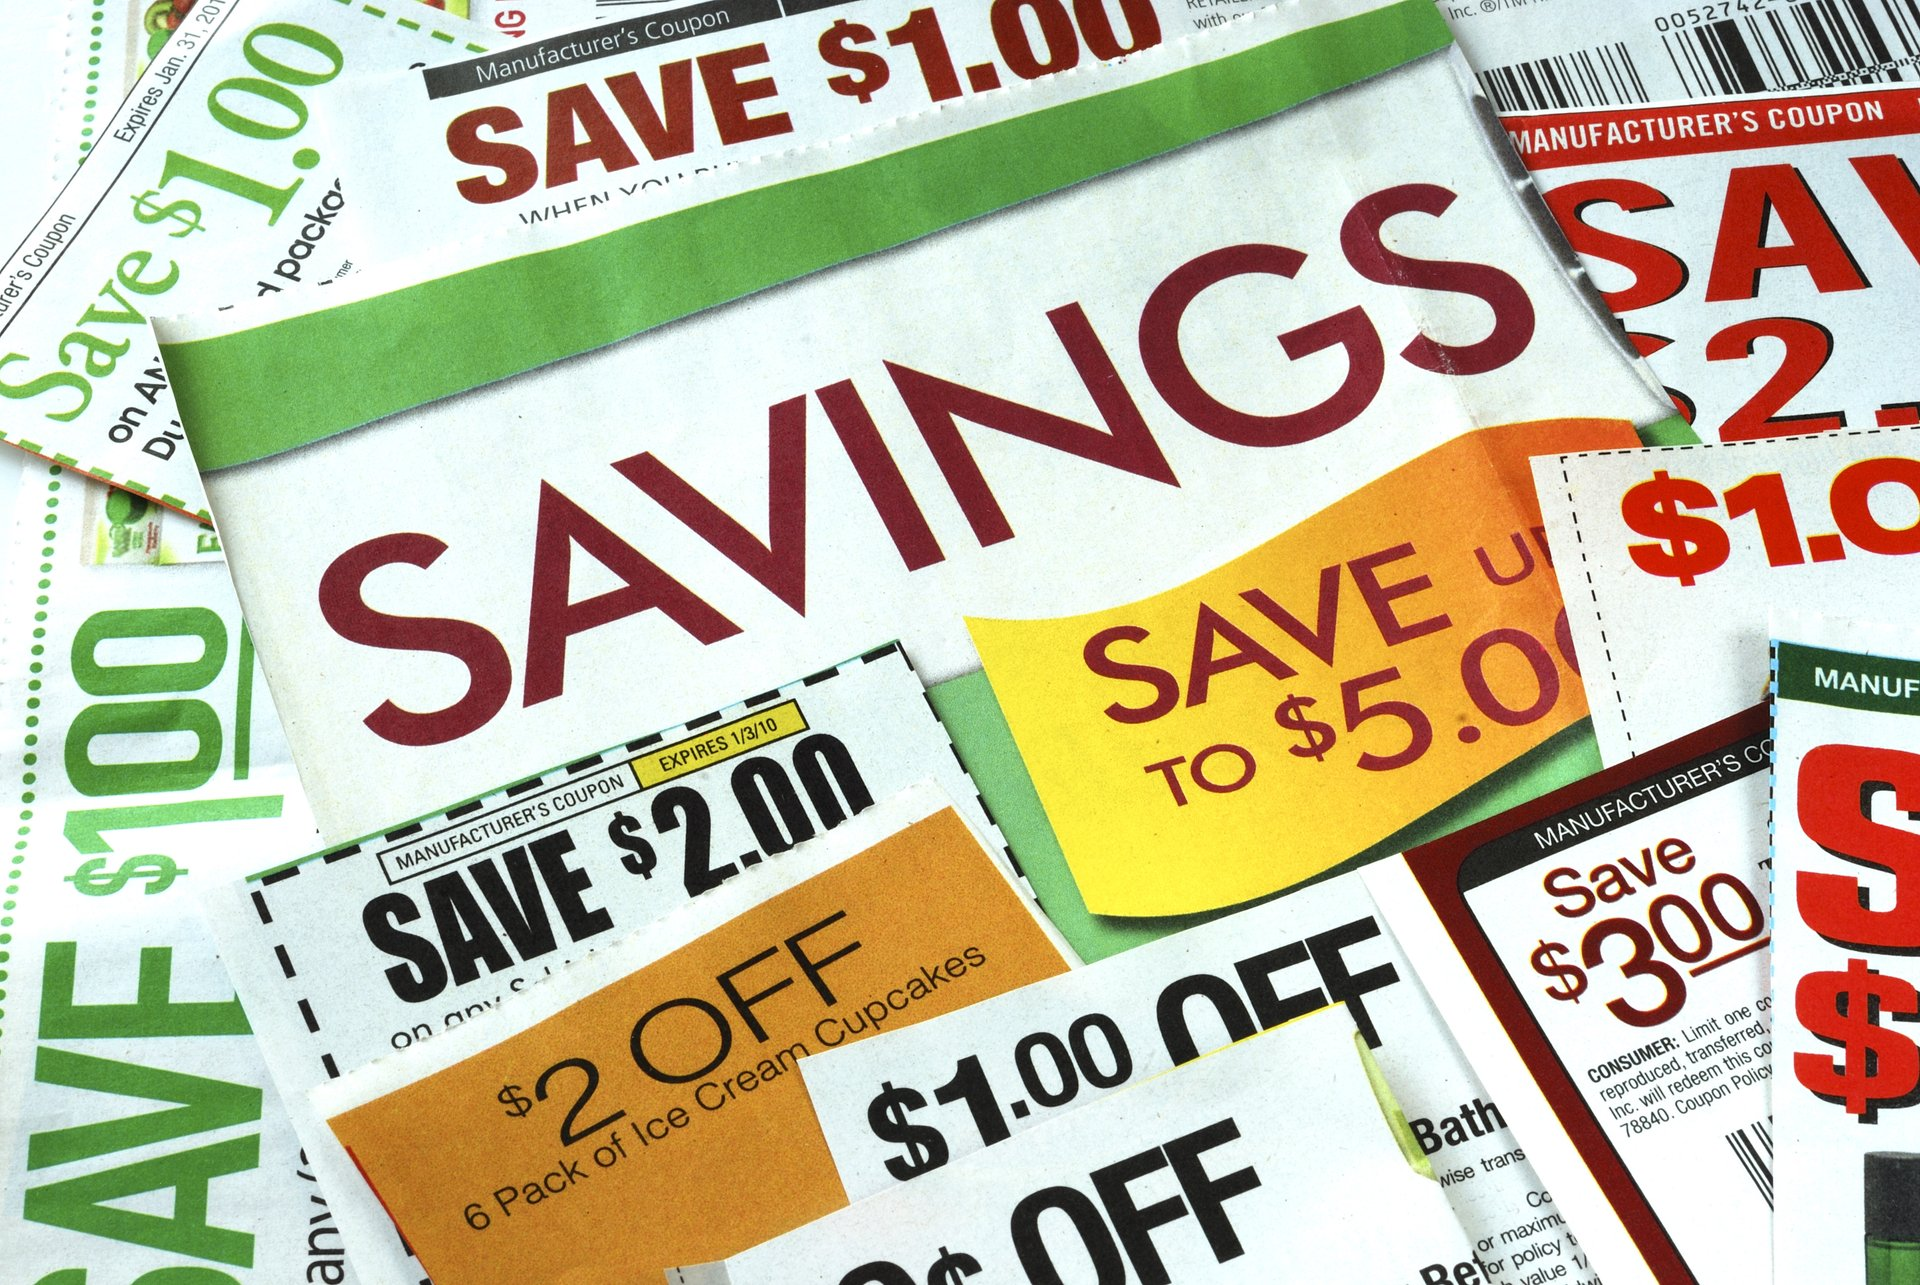 A collection of coupons